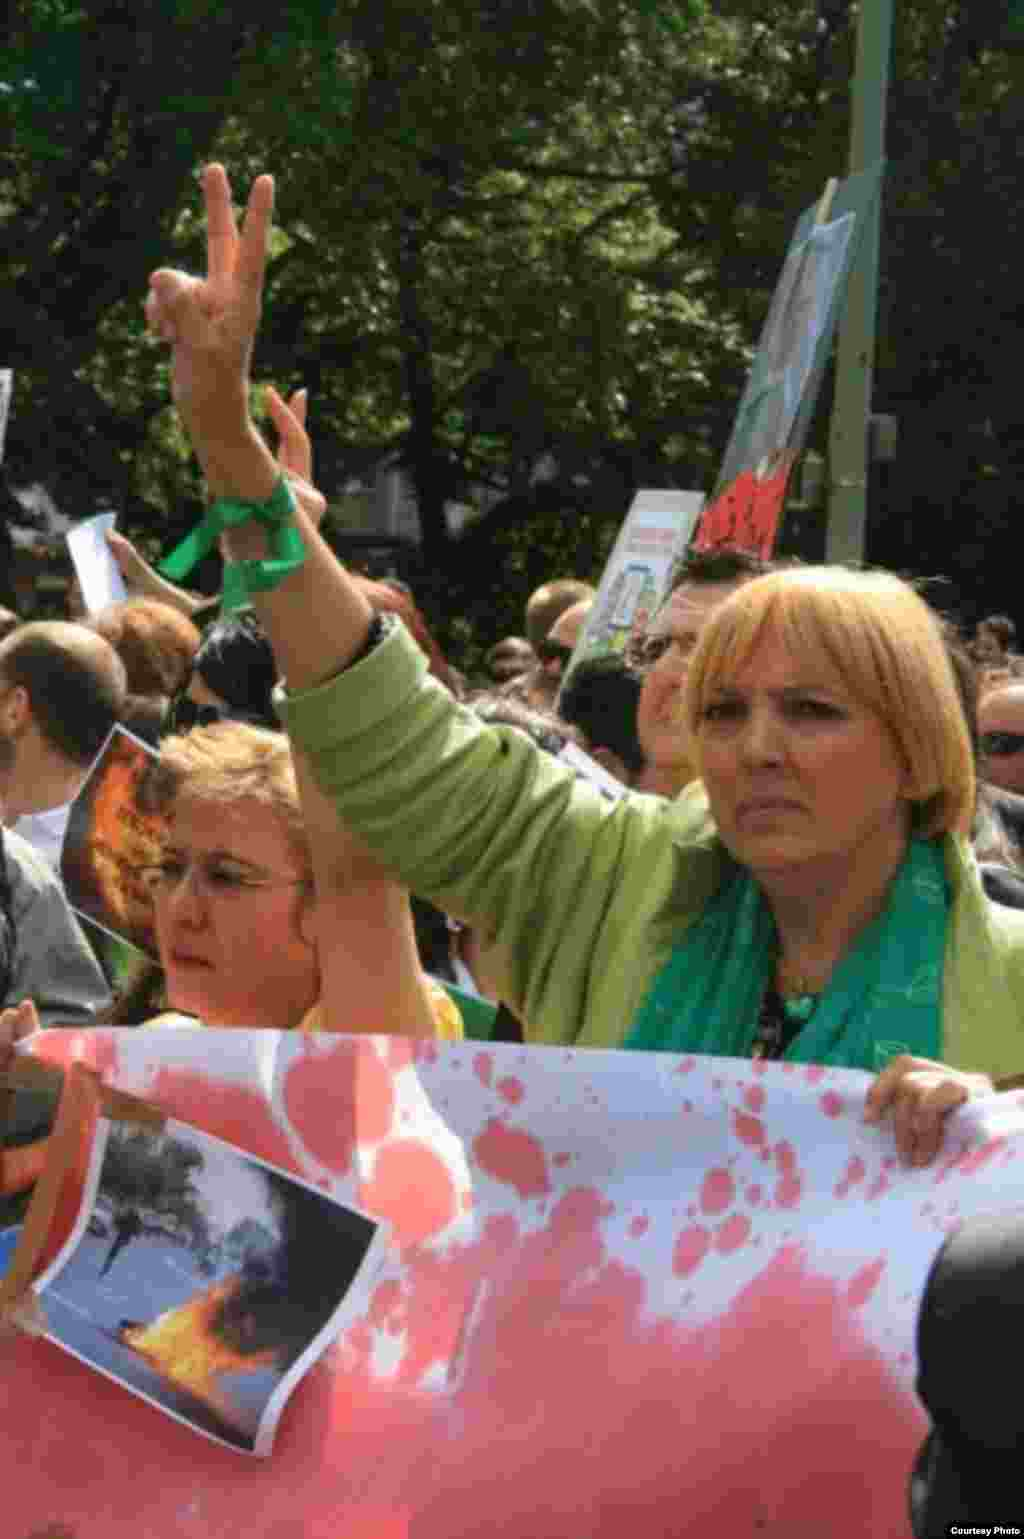 Claudia Roth, a leader of Germany's Green Party, attends one of the summer street protests organized by the Network.